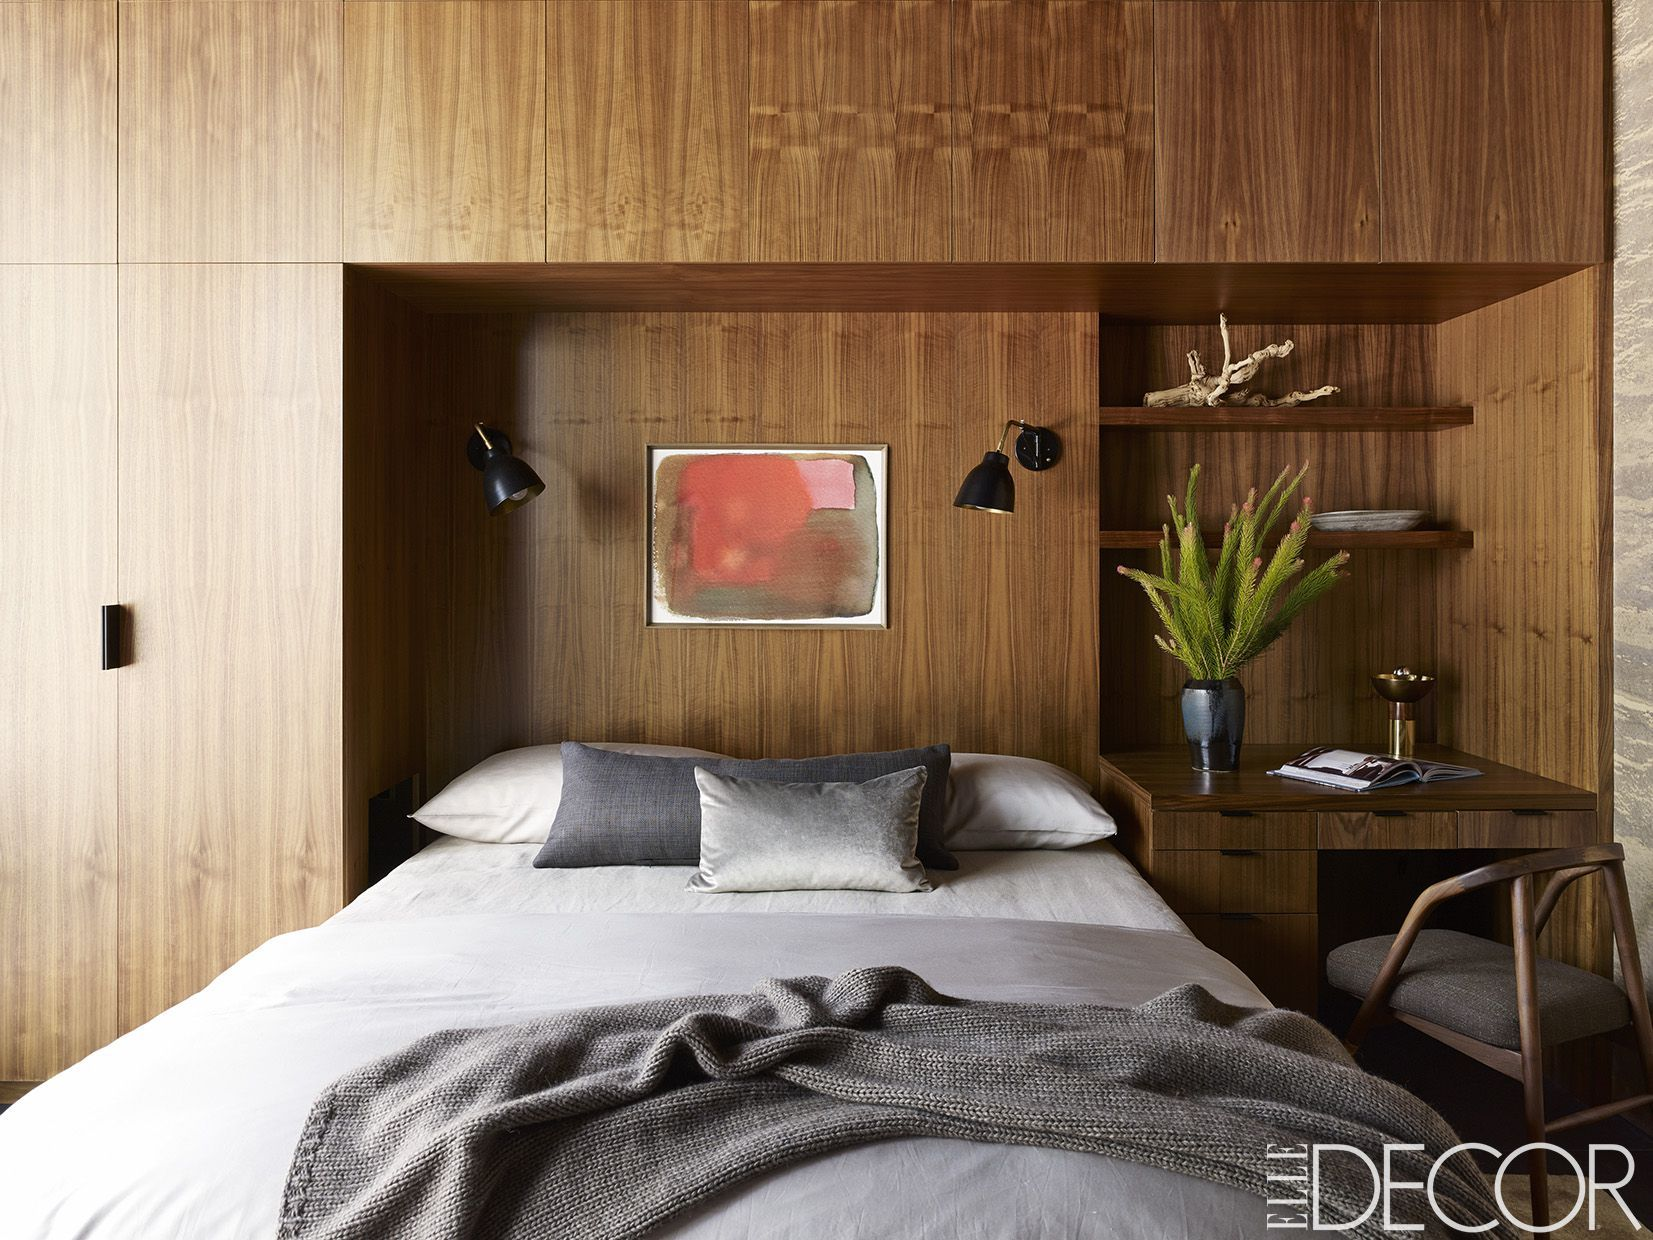 50 small bedroom decorating ideas that maximize coziness